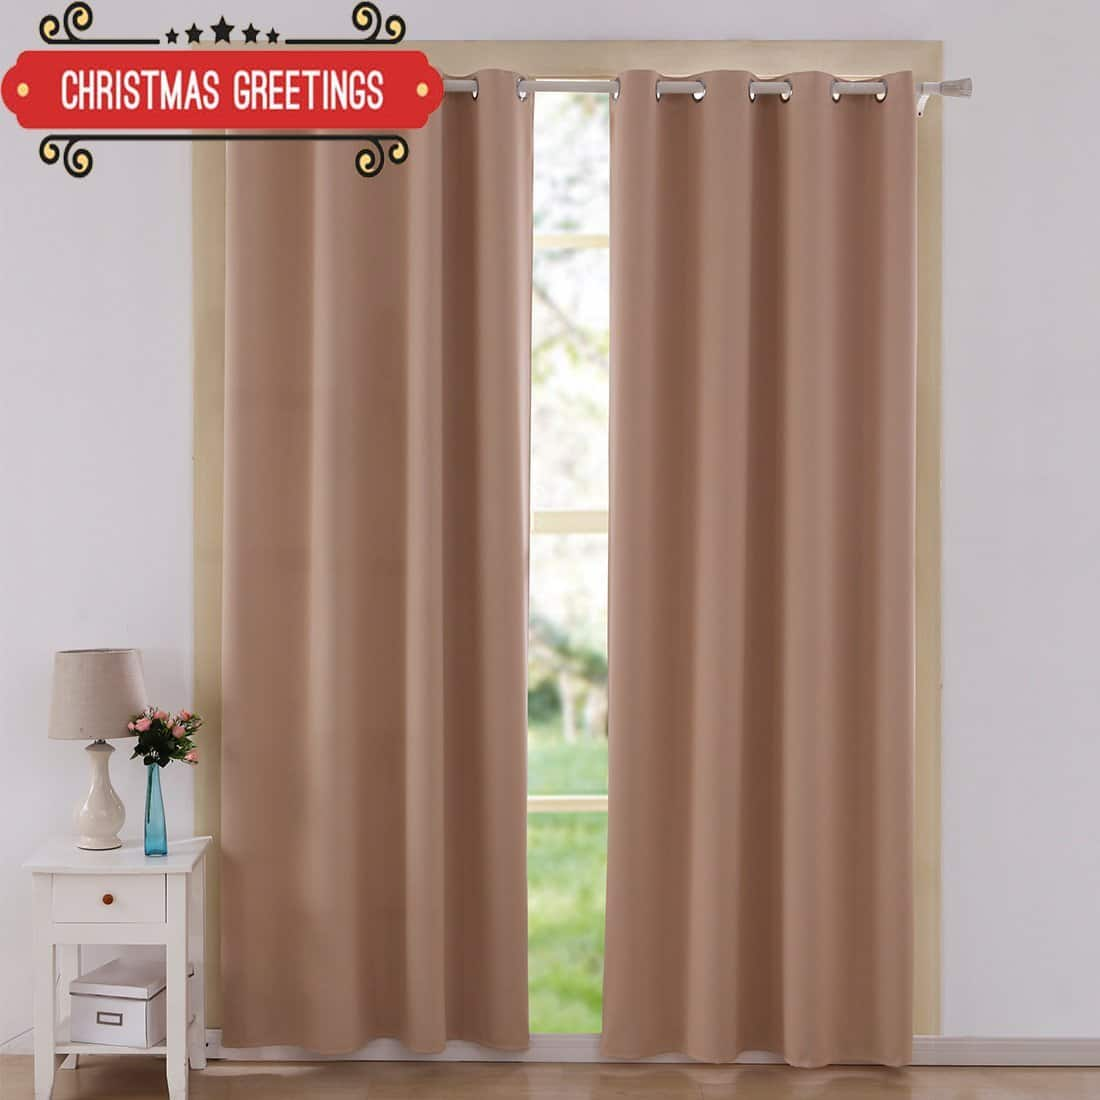 Thermal Insulated Drapes/Blackout Curtains - 2 panels/3 sizes/9 colors $15.90 @ Amazon